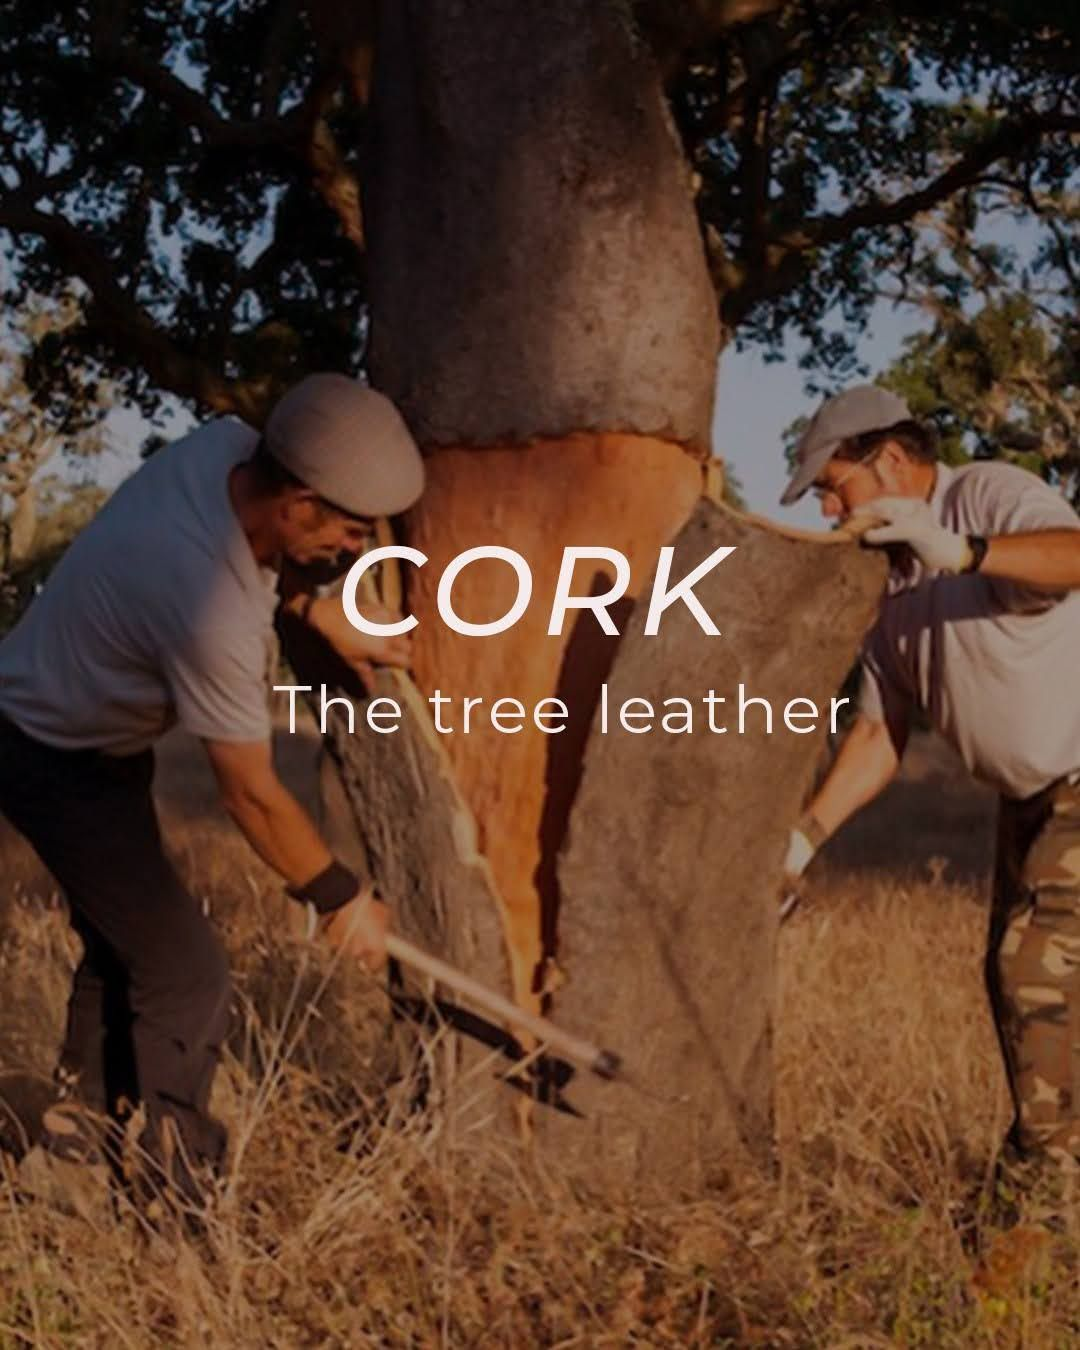 Cork-the tree leather